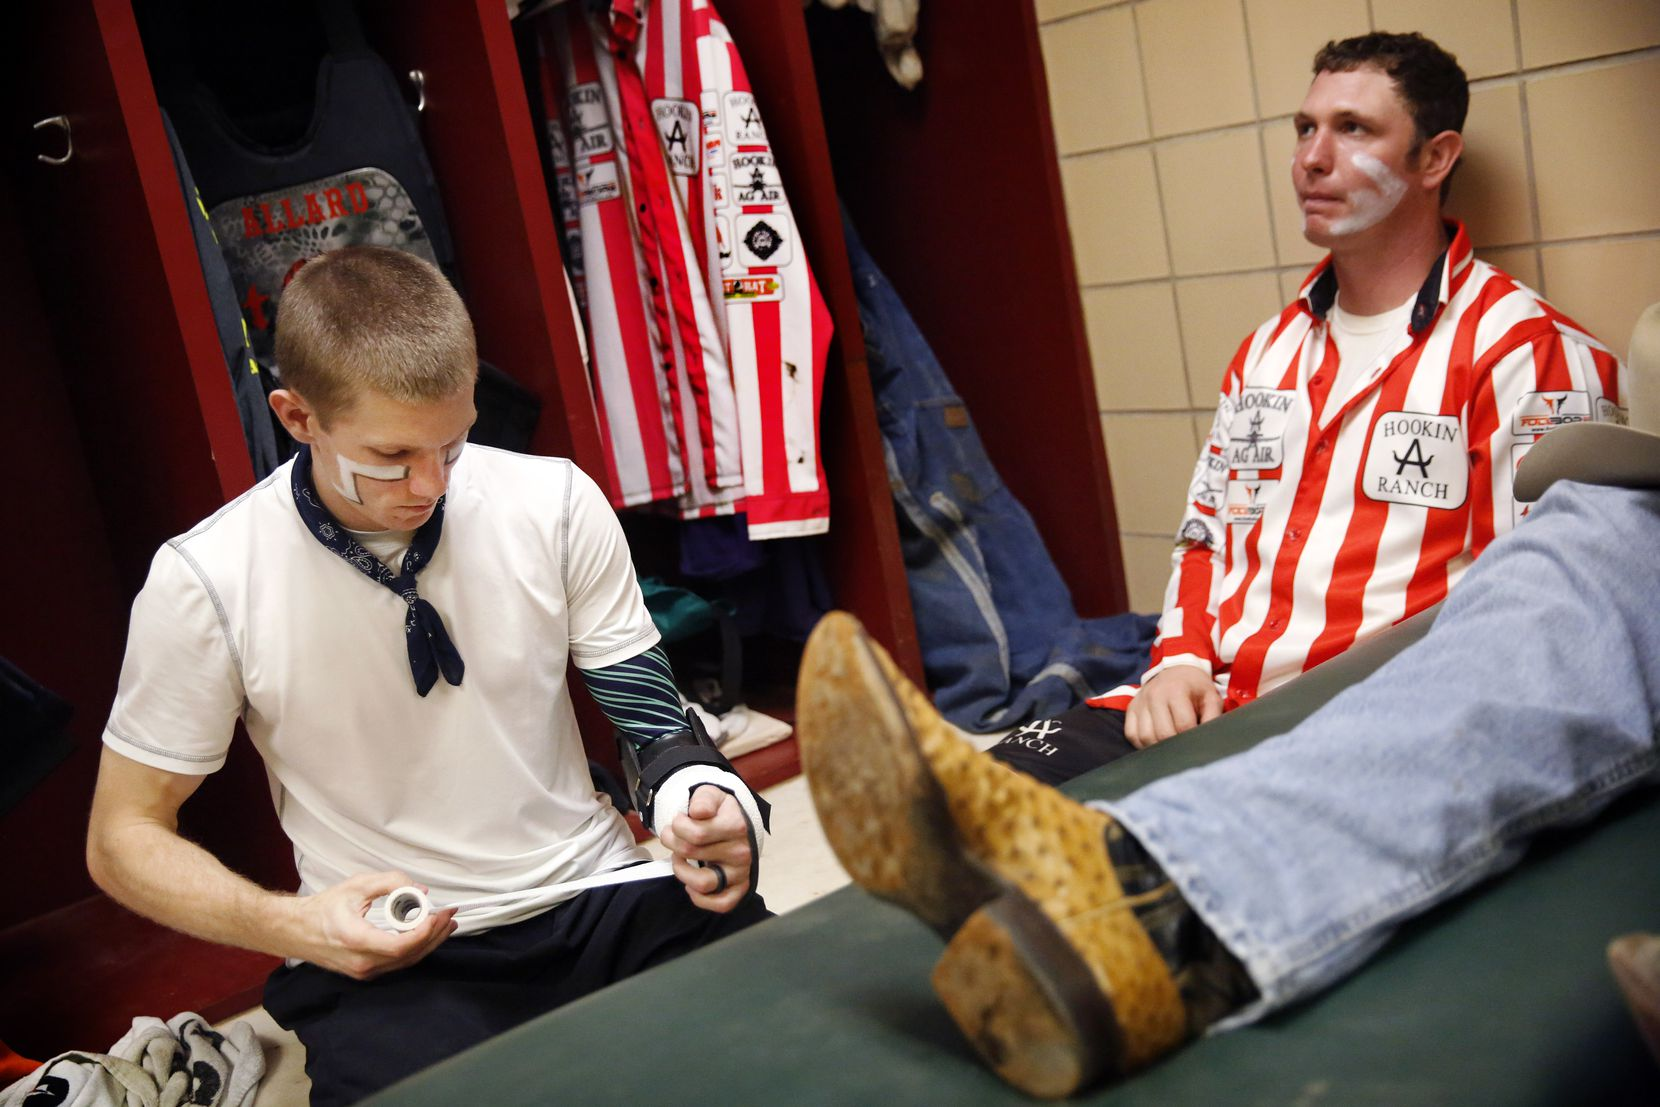 In the Justin Sportsmedicine room, bullfighter Nathan Harp of Tuttle, Oklahoma (left) wraps a brace around his arm as he prepares to go face-to-face with bulls during the PRCA rodeo riding event at the Will Rogers Memorial Coliseum, Saturday, February 2, 2019. Three-time world champion bullfighter Evan Allard (right) of Vinita, Oklahoma has been doing this full time for the past 14 years.